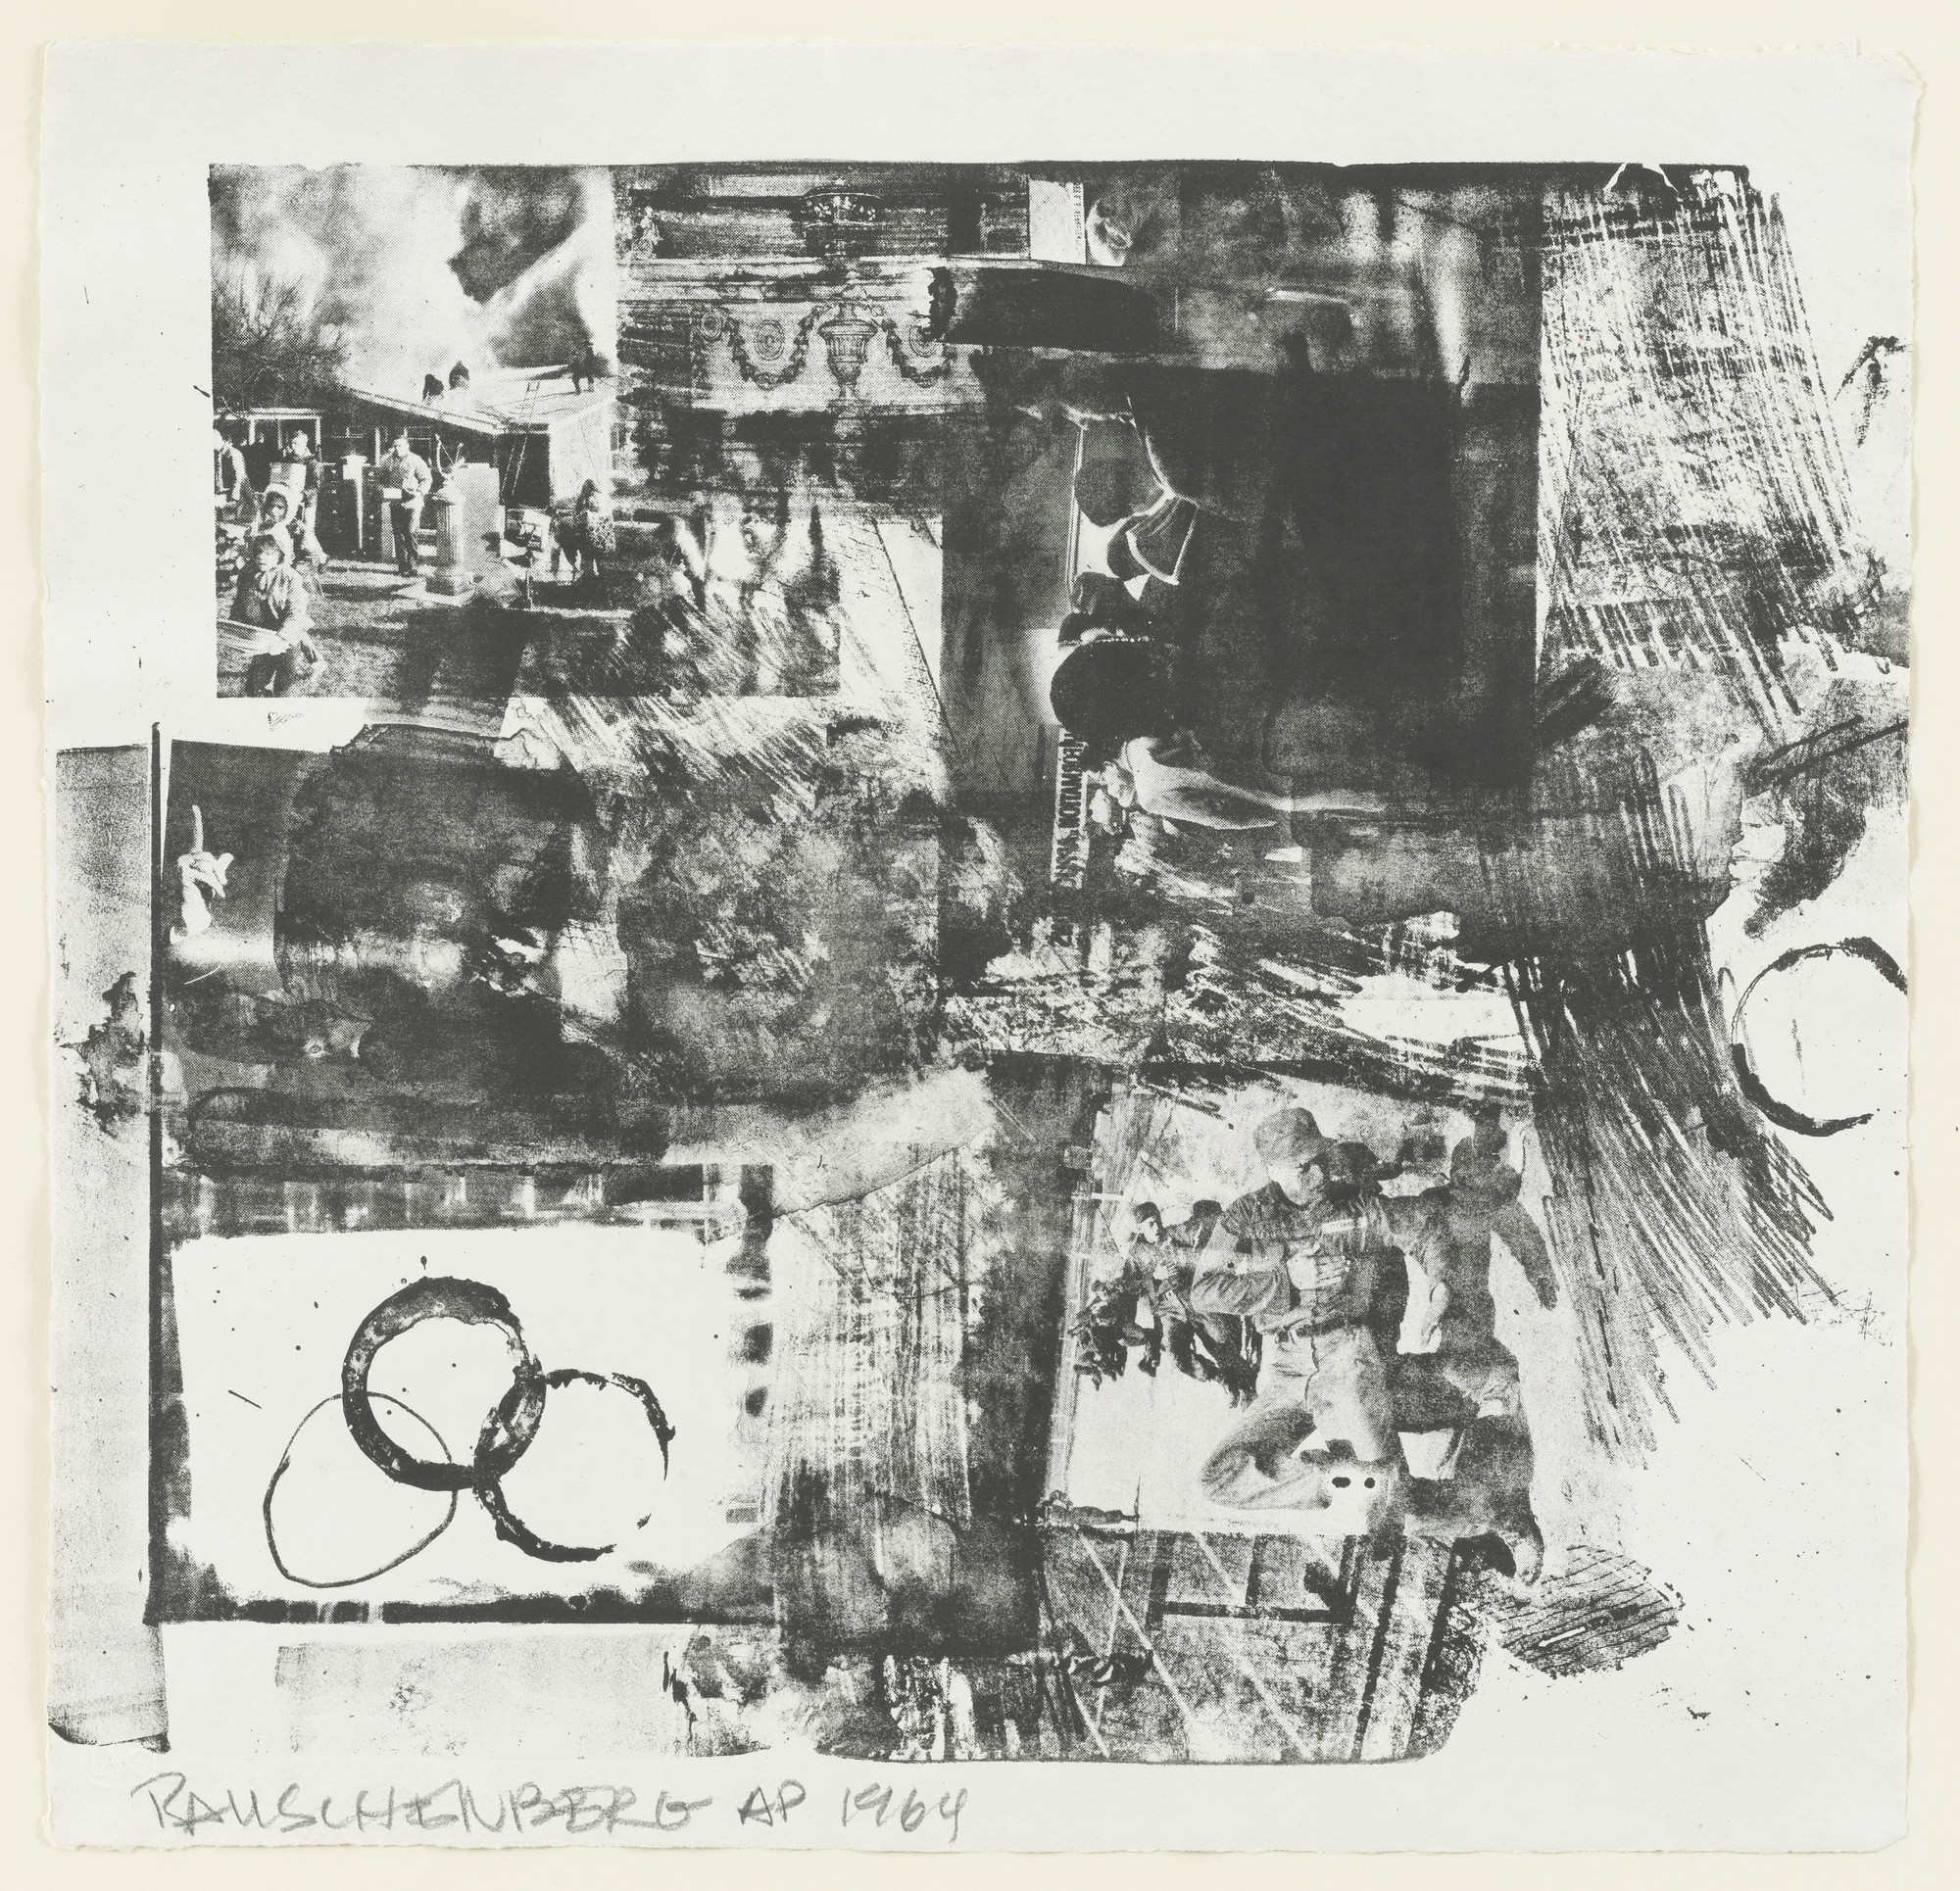 Robert Rauschenberg. Prize, supplementary plate for the deluxe edition of the illustrated book, Rauschenberg: XXXIV Drawings for Dante's Inferno. 1964